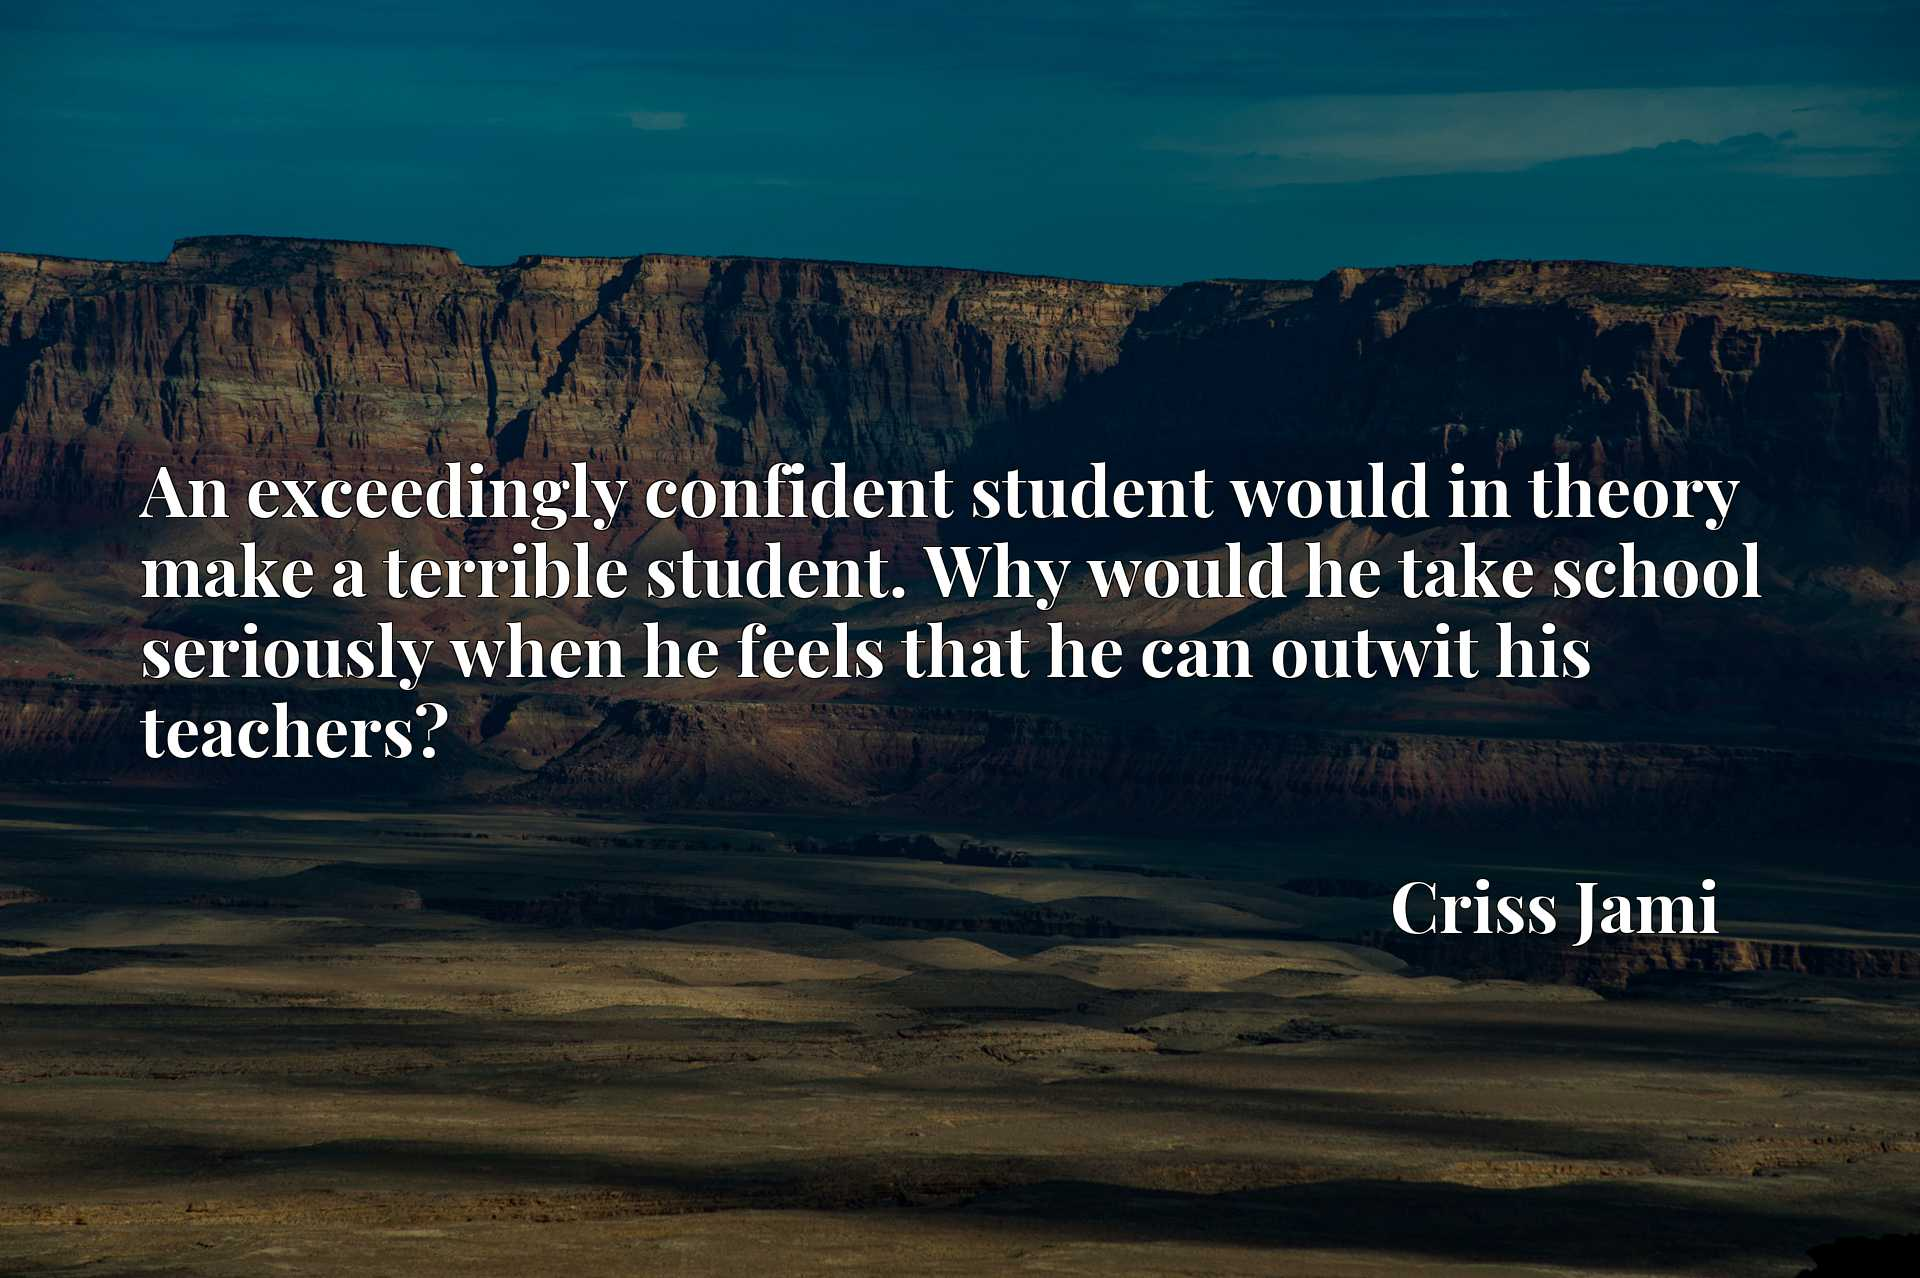 An exceedingly confident student would in theory make a terrible student. Why would he take school seriously when he feels that he can outwit his teachers?